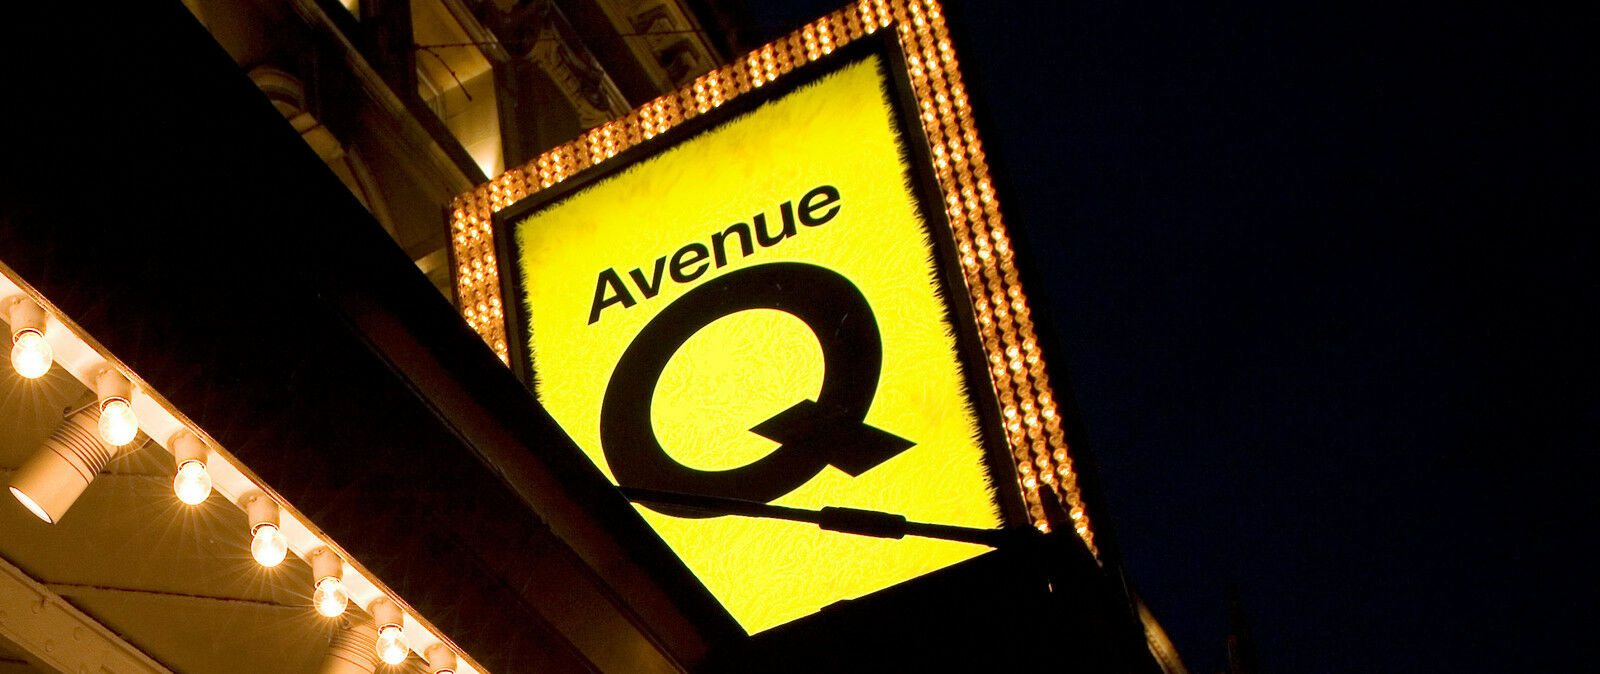 Avenue Q New York | New York, NY | Stage 1 at New World Stages | December 10, 2017